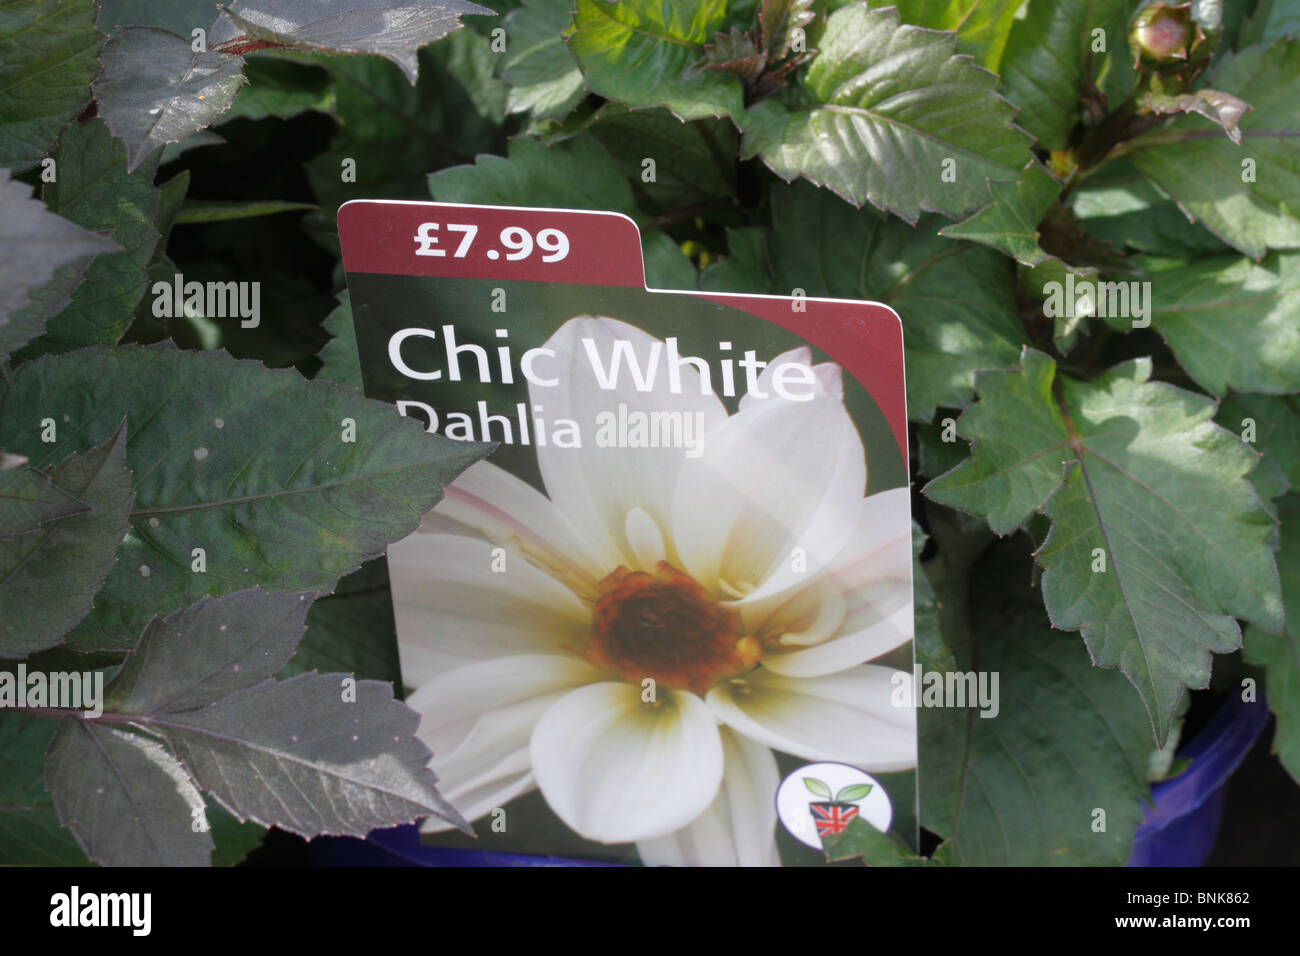 Asteraceae dahlia chic white ball flower with dark foliage small asteraceae dahlia chic white ball flower with dark foliage small tuberous perennial with toothed almost black pinnate leaves and large double mightylinksfo Image collections